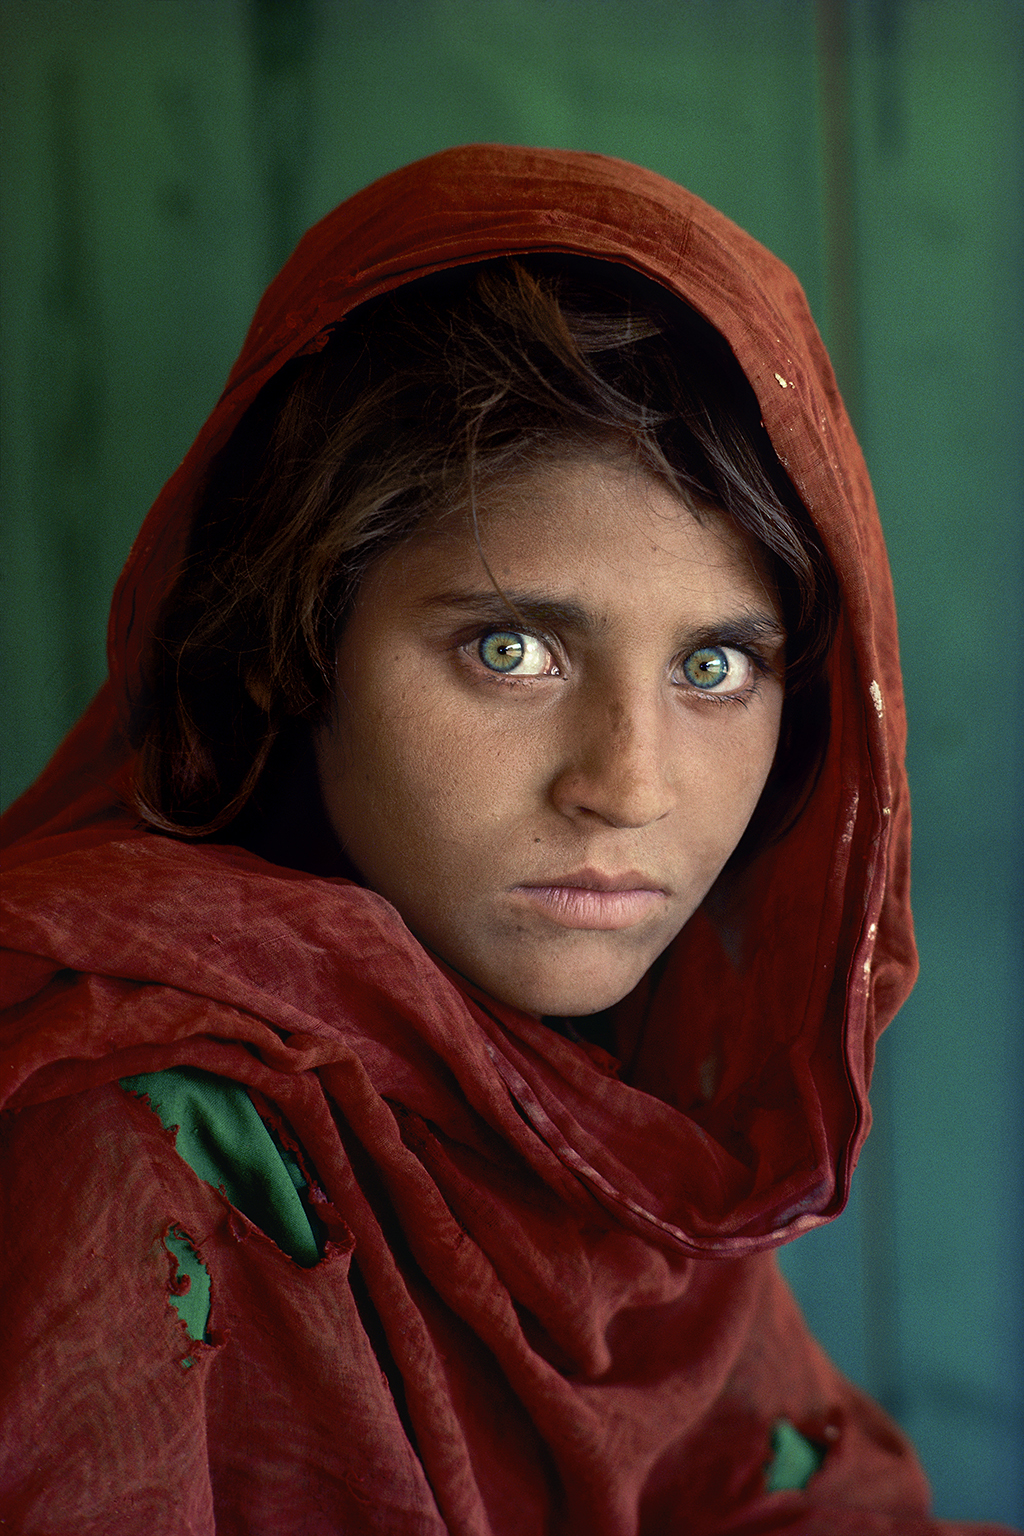 Steve McCurry's most recent book reveals more about the photographer behind the great images